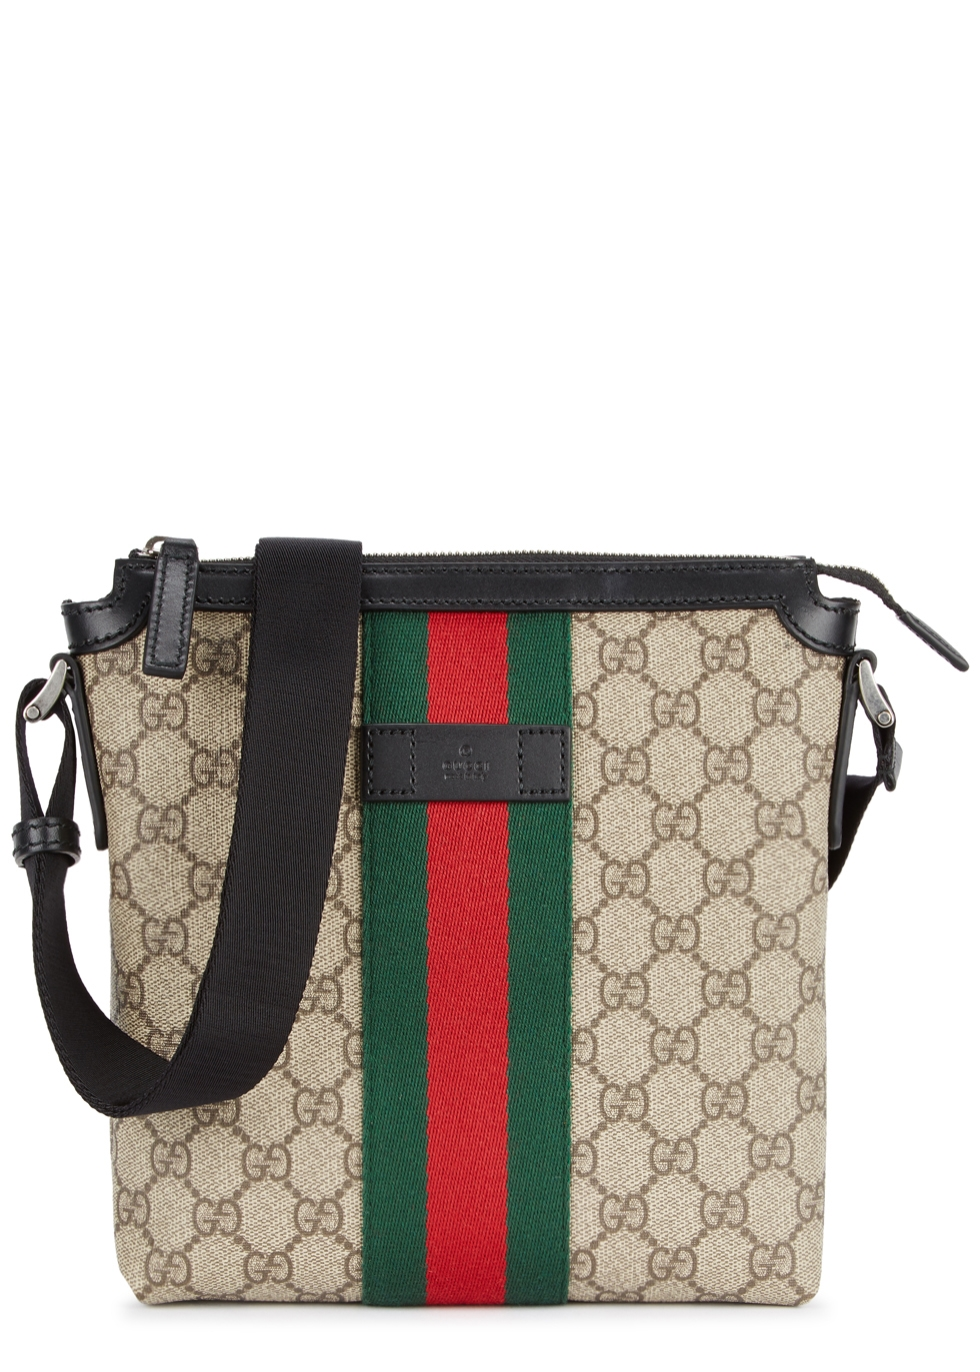 GUCCI GG SUPREME CANVAS CROSS-BODY BAG